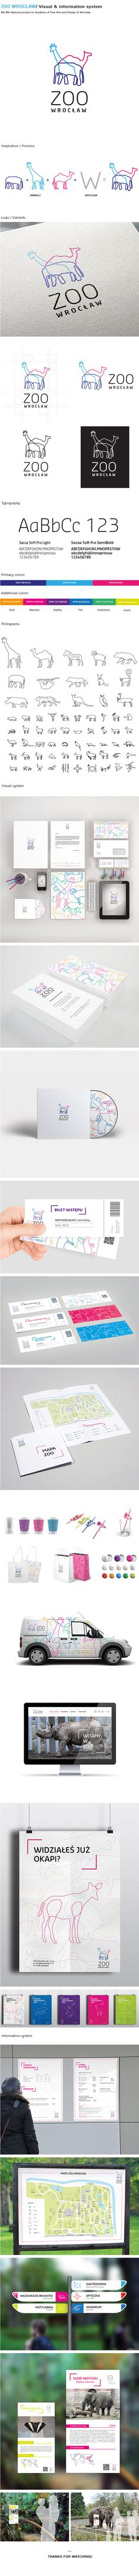 ZOO WROCLAW © on Behance by Agata Szota. Long pin by great packaging and…